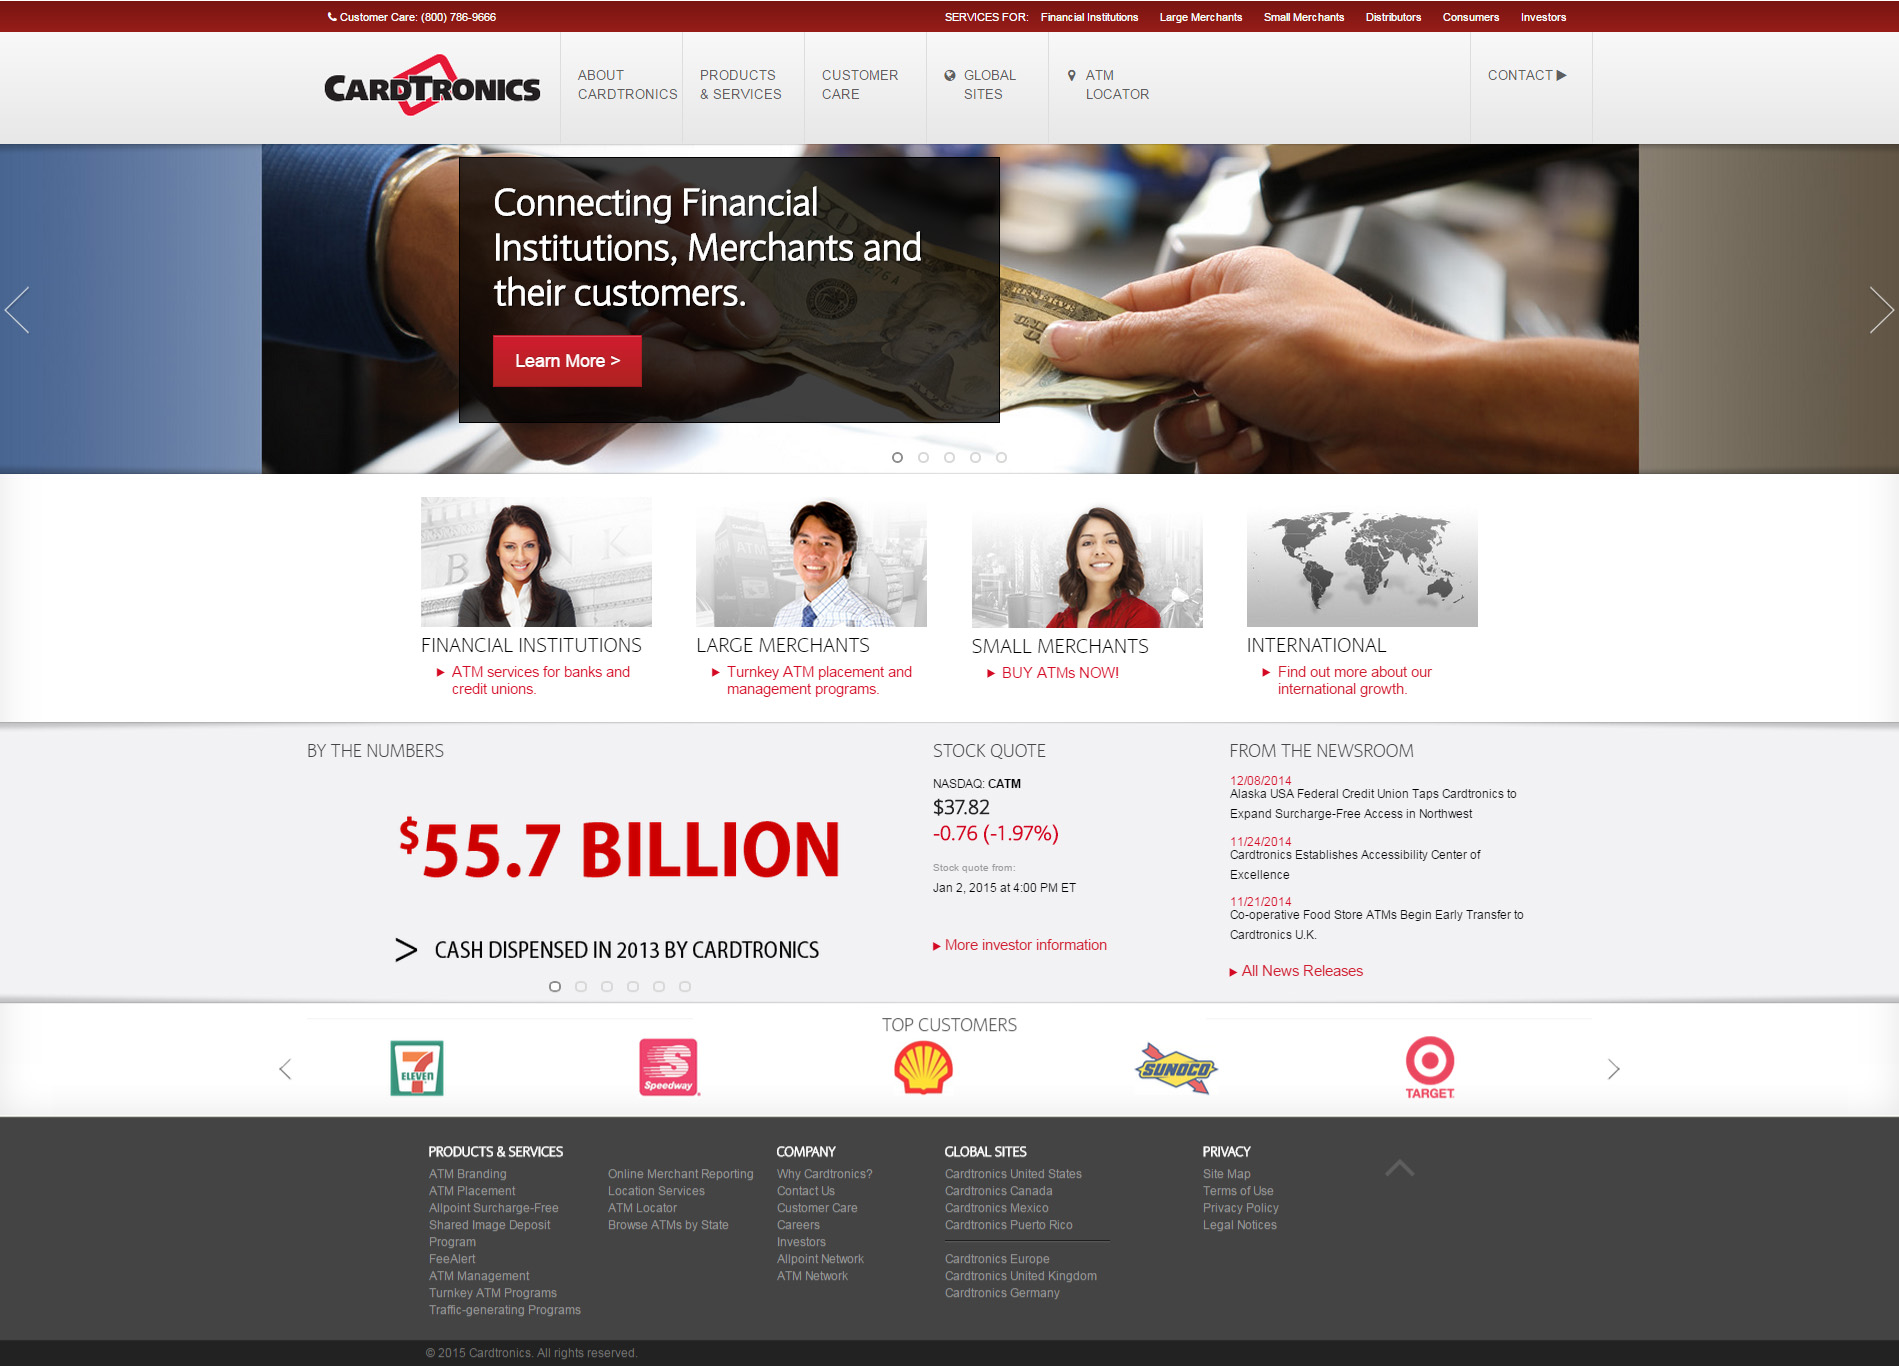 Cardtronics - Website, Email, Direct Mail, Advertisements, Videos, Application Development, User Interface Design, User Experience, Analytics, Tradeshow Presentations